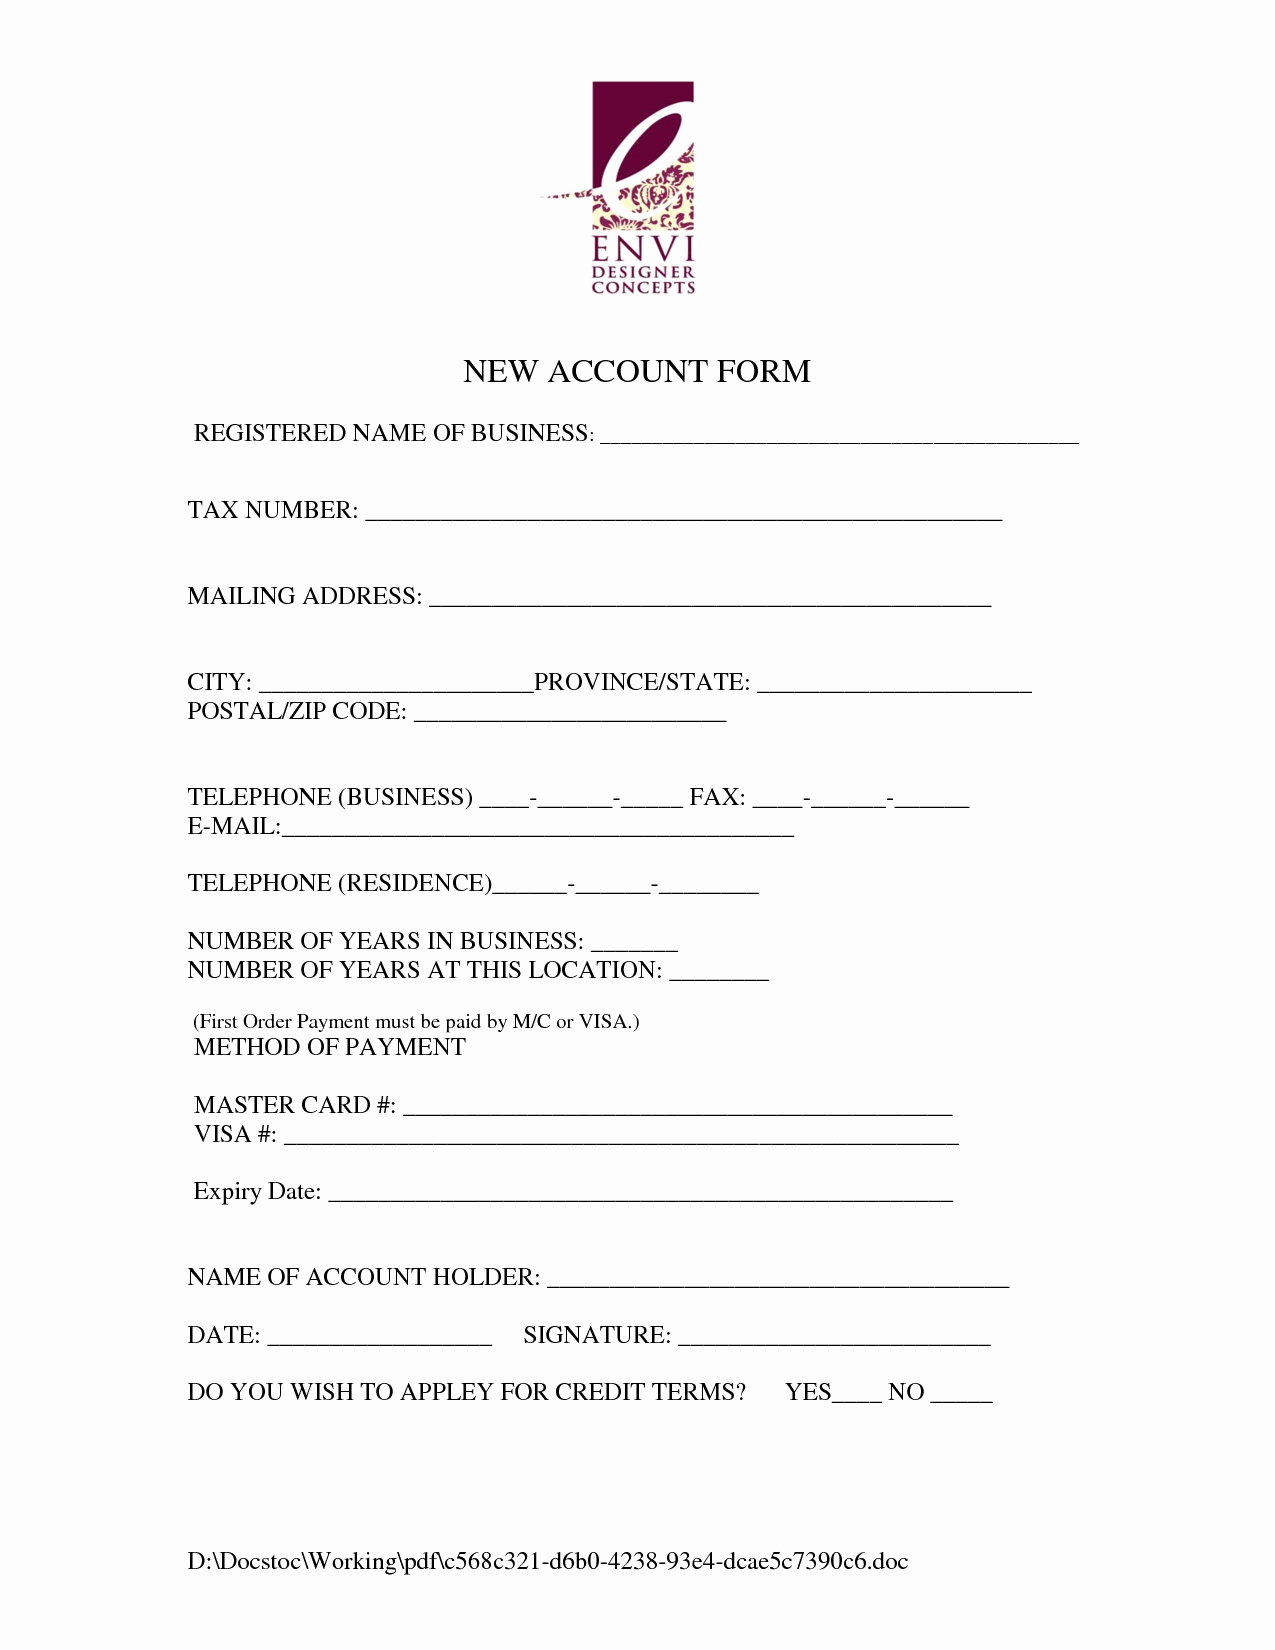 Customer Contact Information form Template Best Of Best S Of New Client Information form Template New